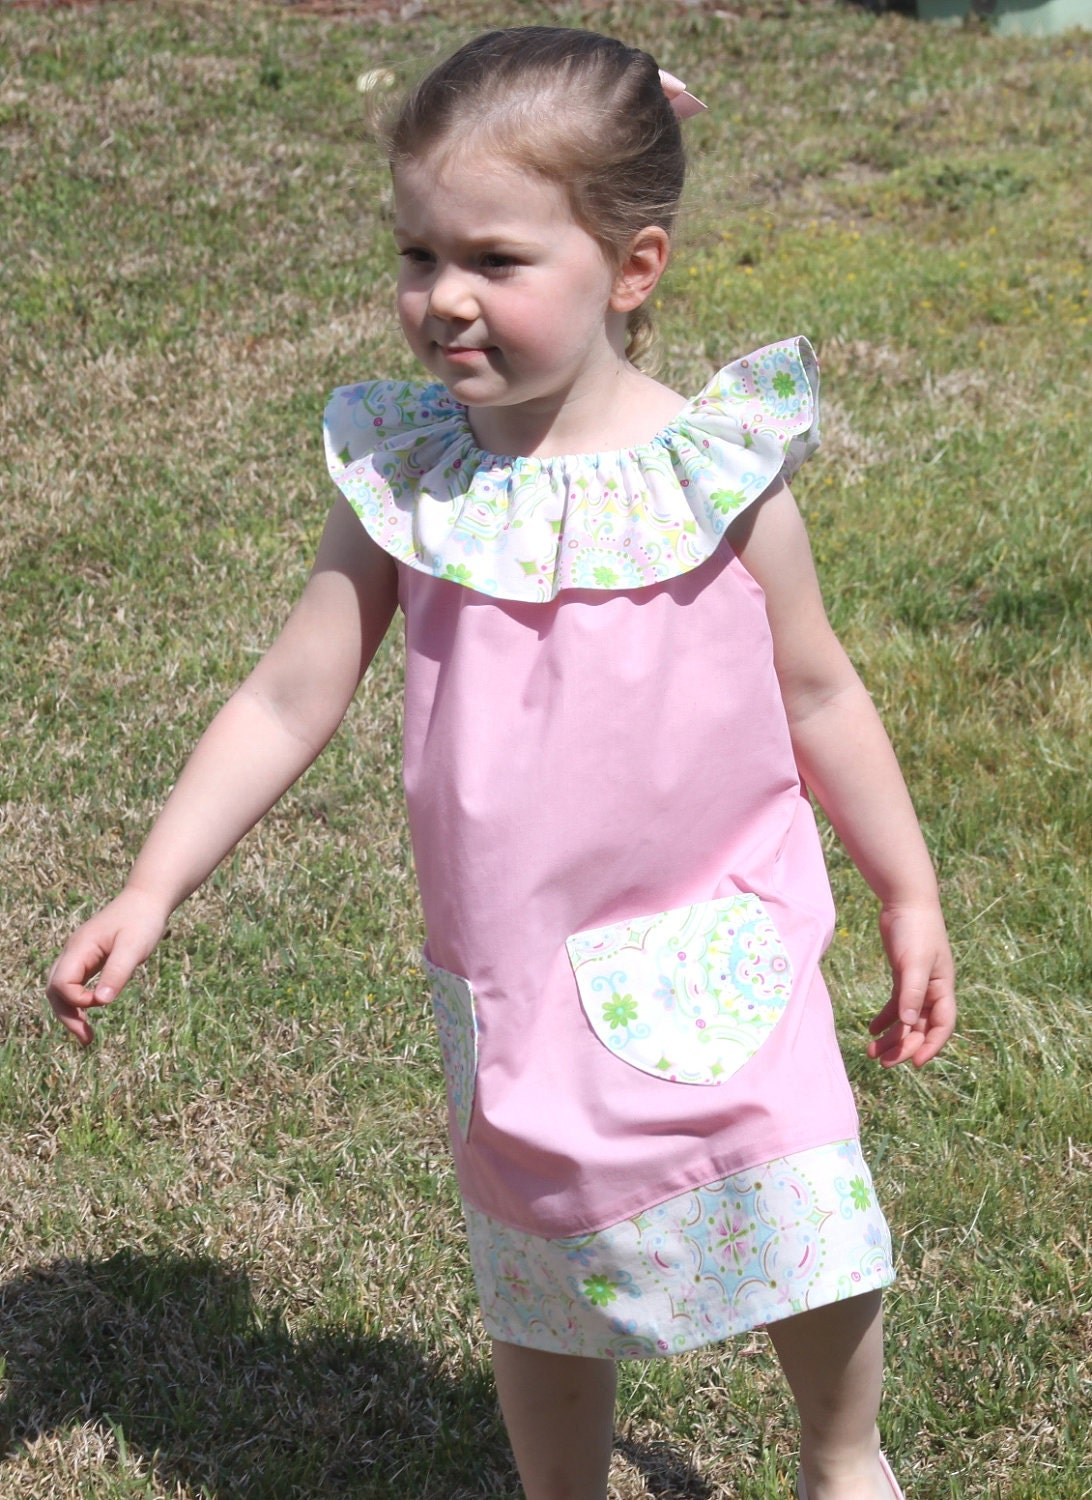 On Sale Now - Charlotte Ruffle Neck Dress- Custom Boutique Clothing - 6m, 12m, 18m. 24m/2T, 3T, 4T, 5T, 6T  - Spring & Easter